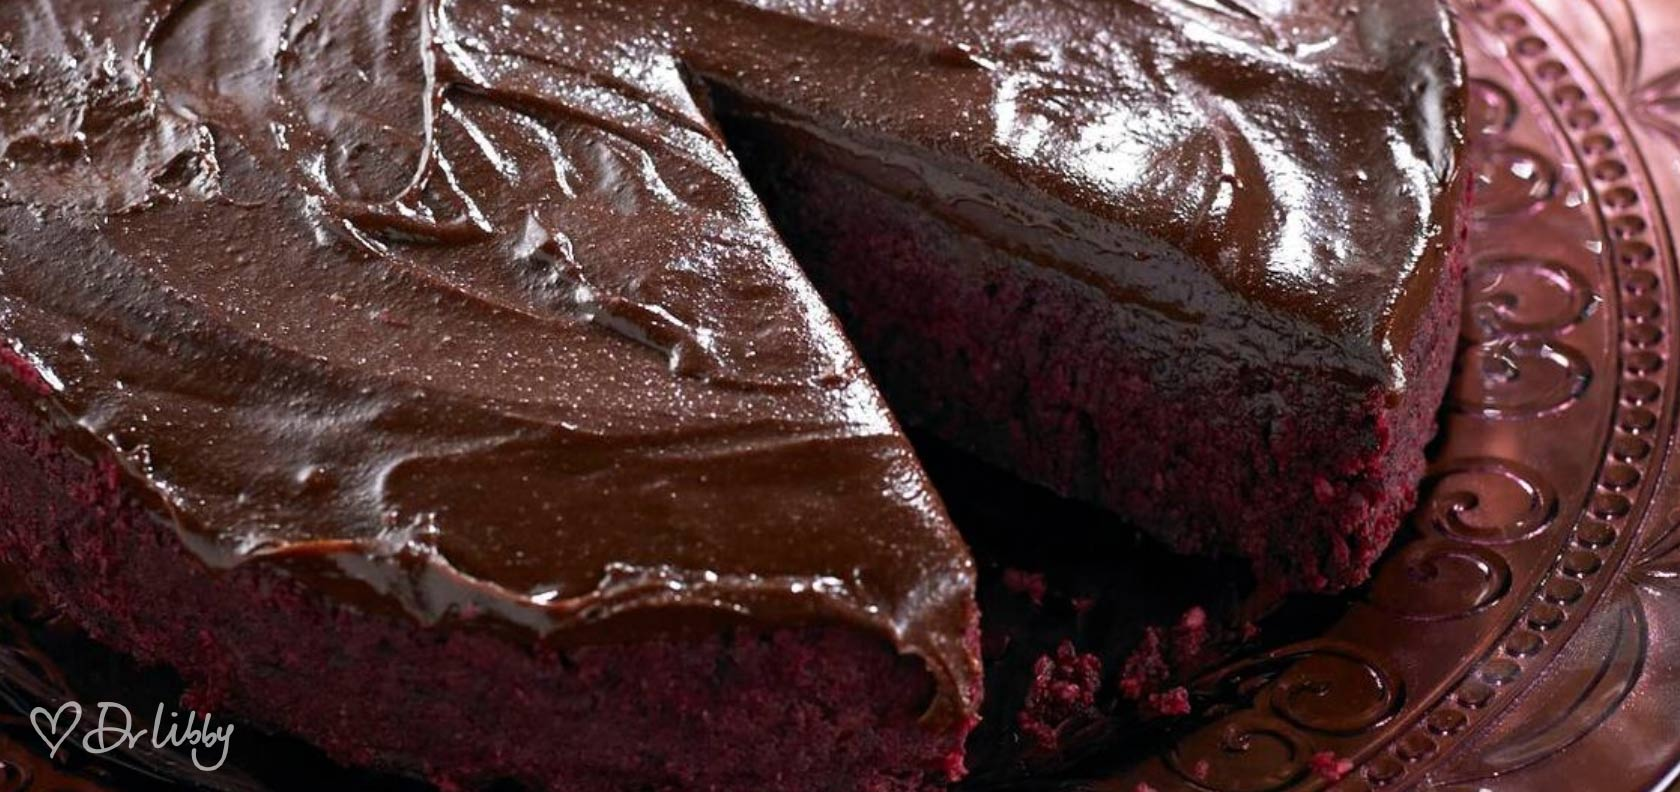 Chocolate Mud Cake Images : Beetroot Chocolate Mud Cake - Dr Libby